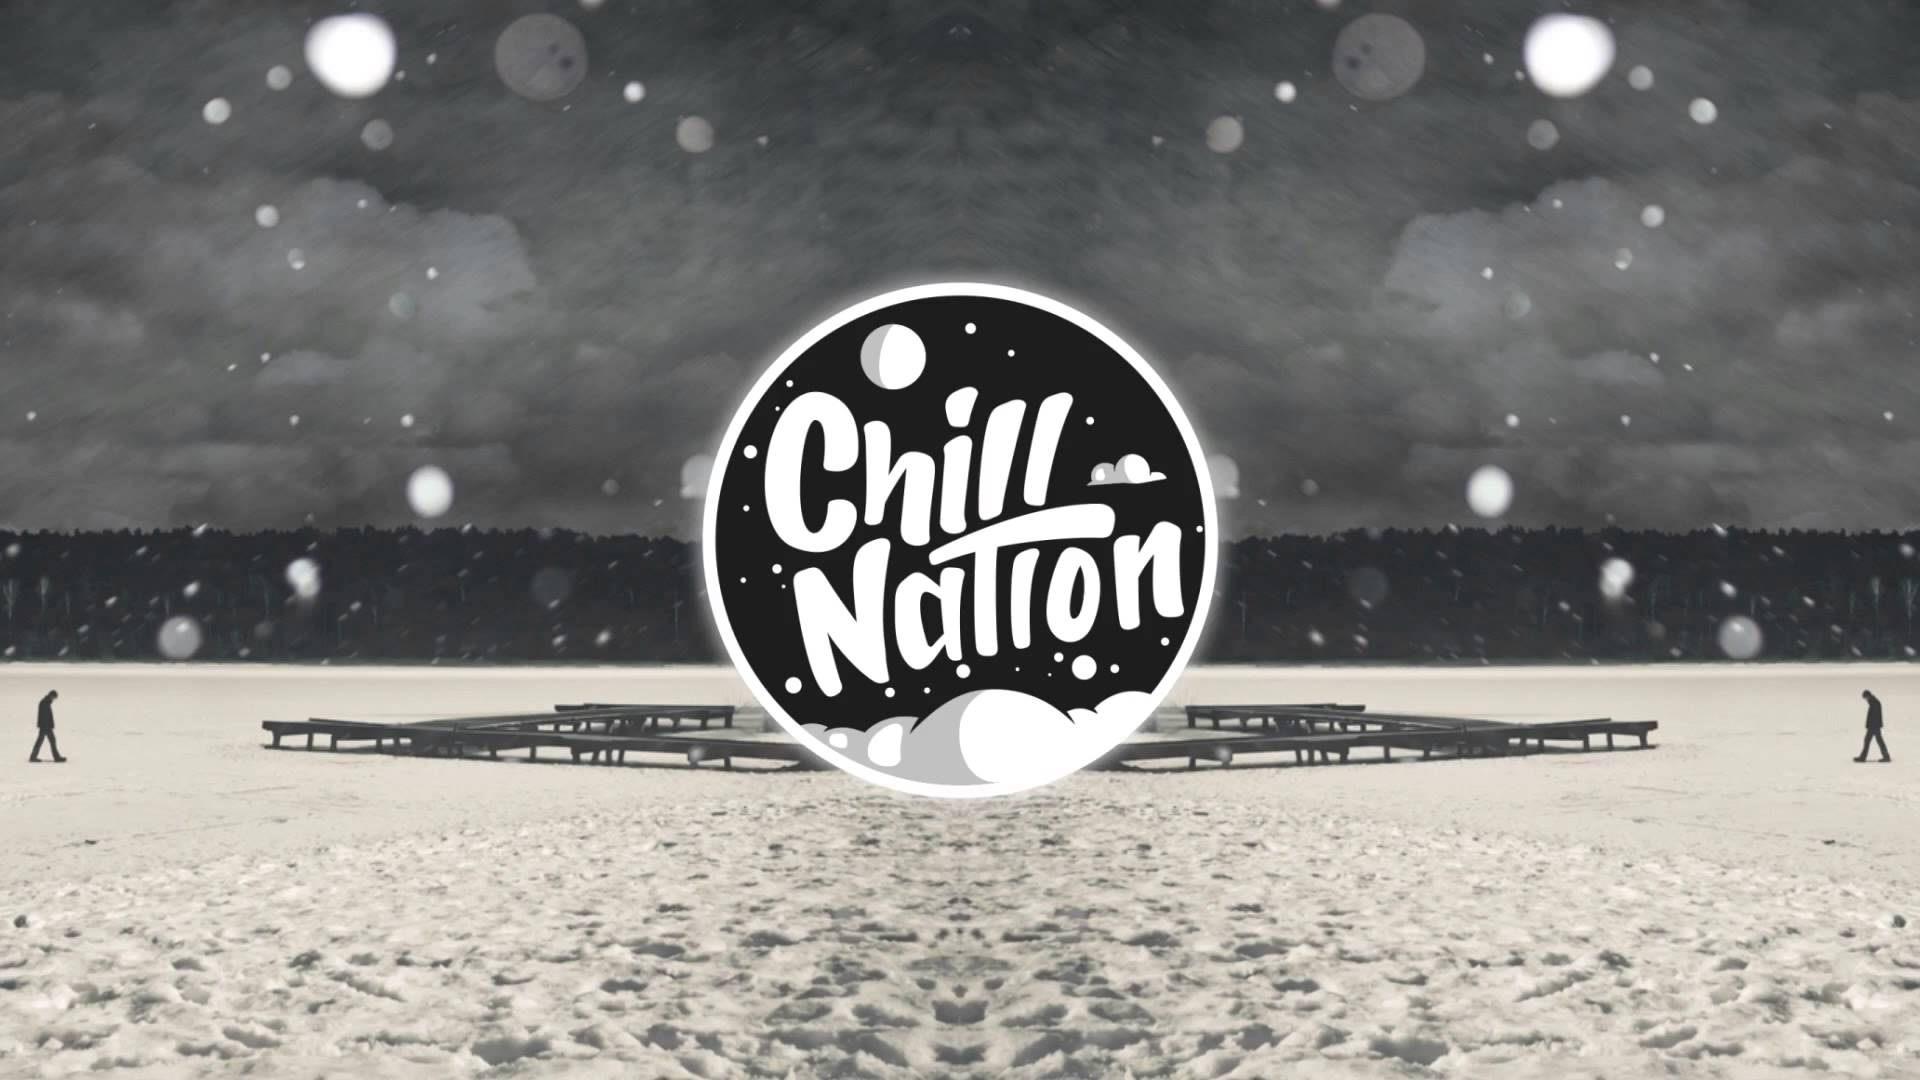 Thumb Image New Beginnings Chill Mix Vocal Deep House Chillout 1920x1080 Wallpaper Teahub Io